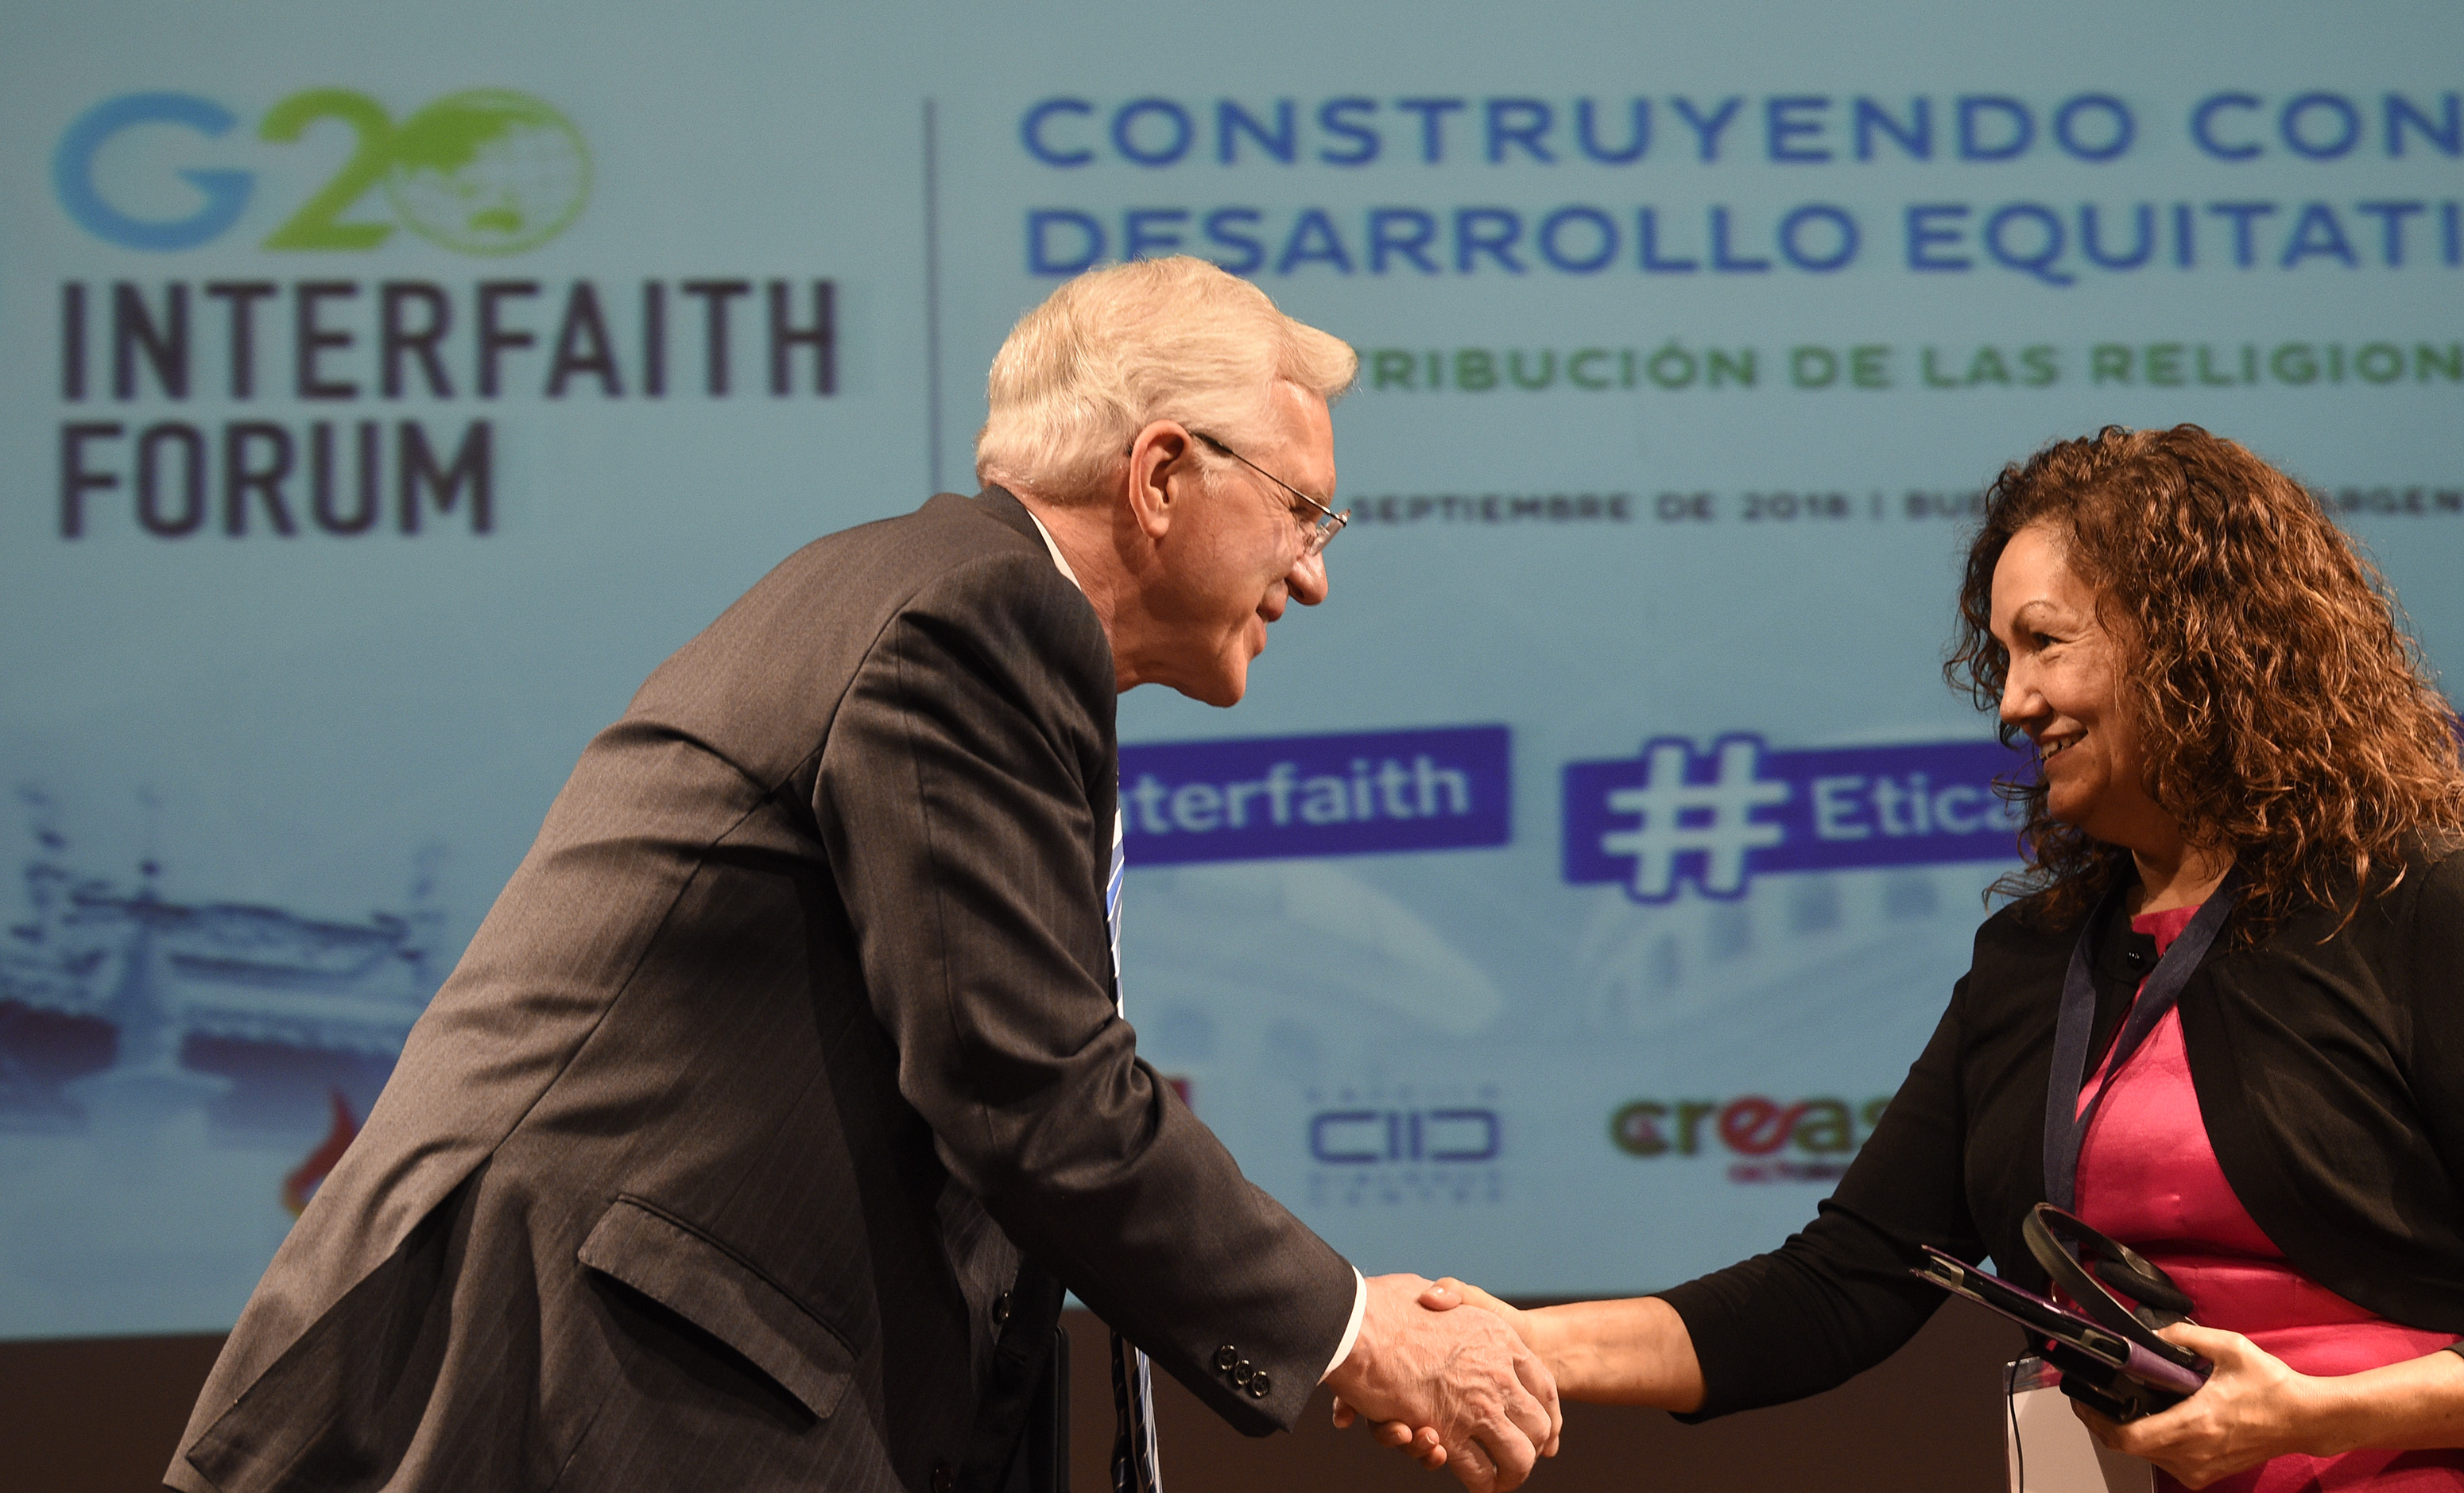 Elder D. Todd Christofferson, left, greets Rev. Gloria Ulloa from Colombia during the G20 Interfaith Forum in Buenos Aires, Argentina, on Wednesday, Sept. 26, 2018.